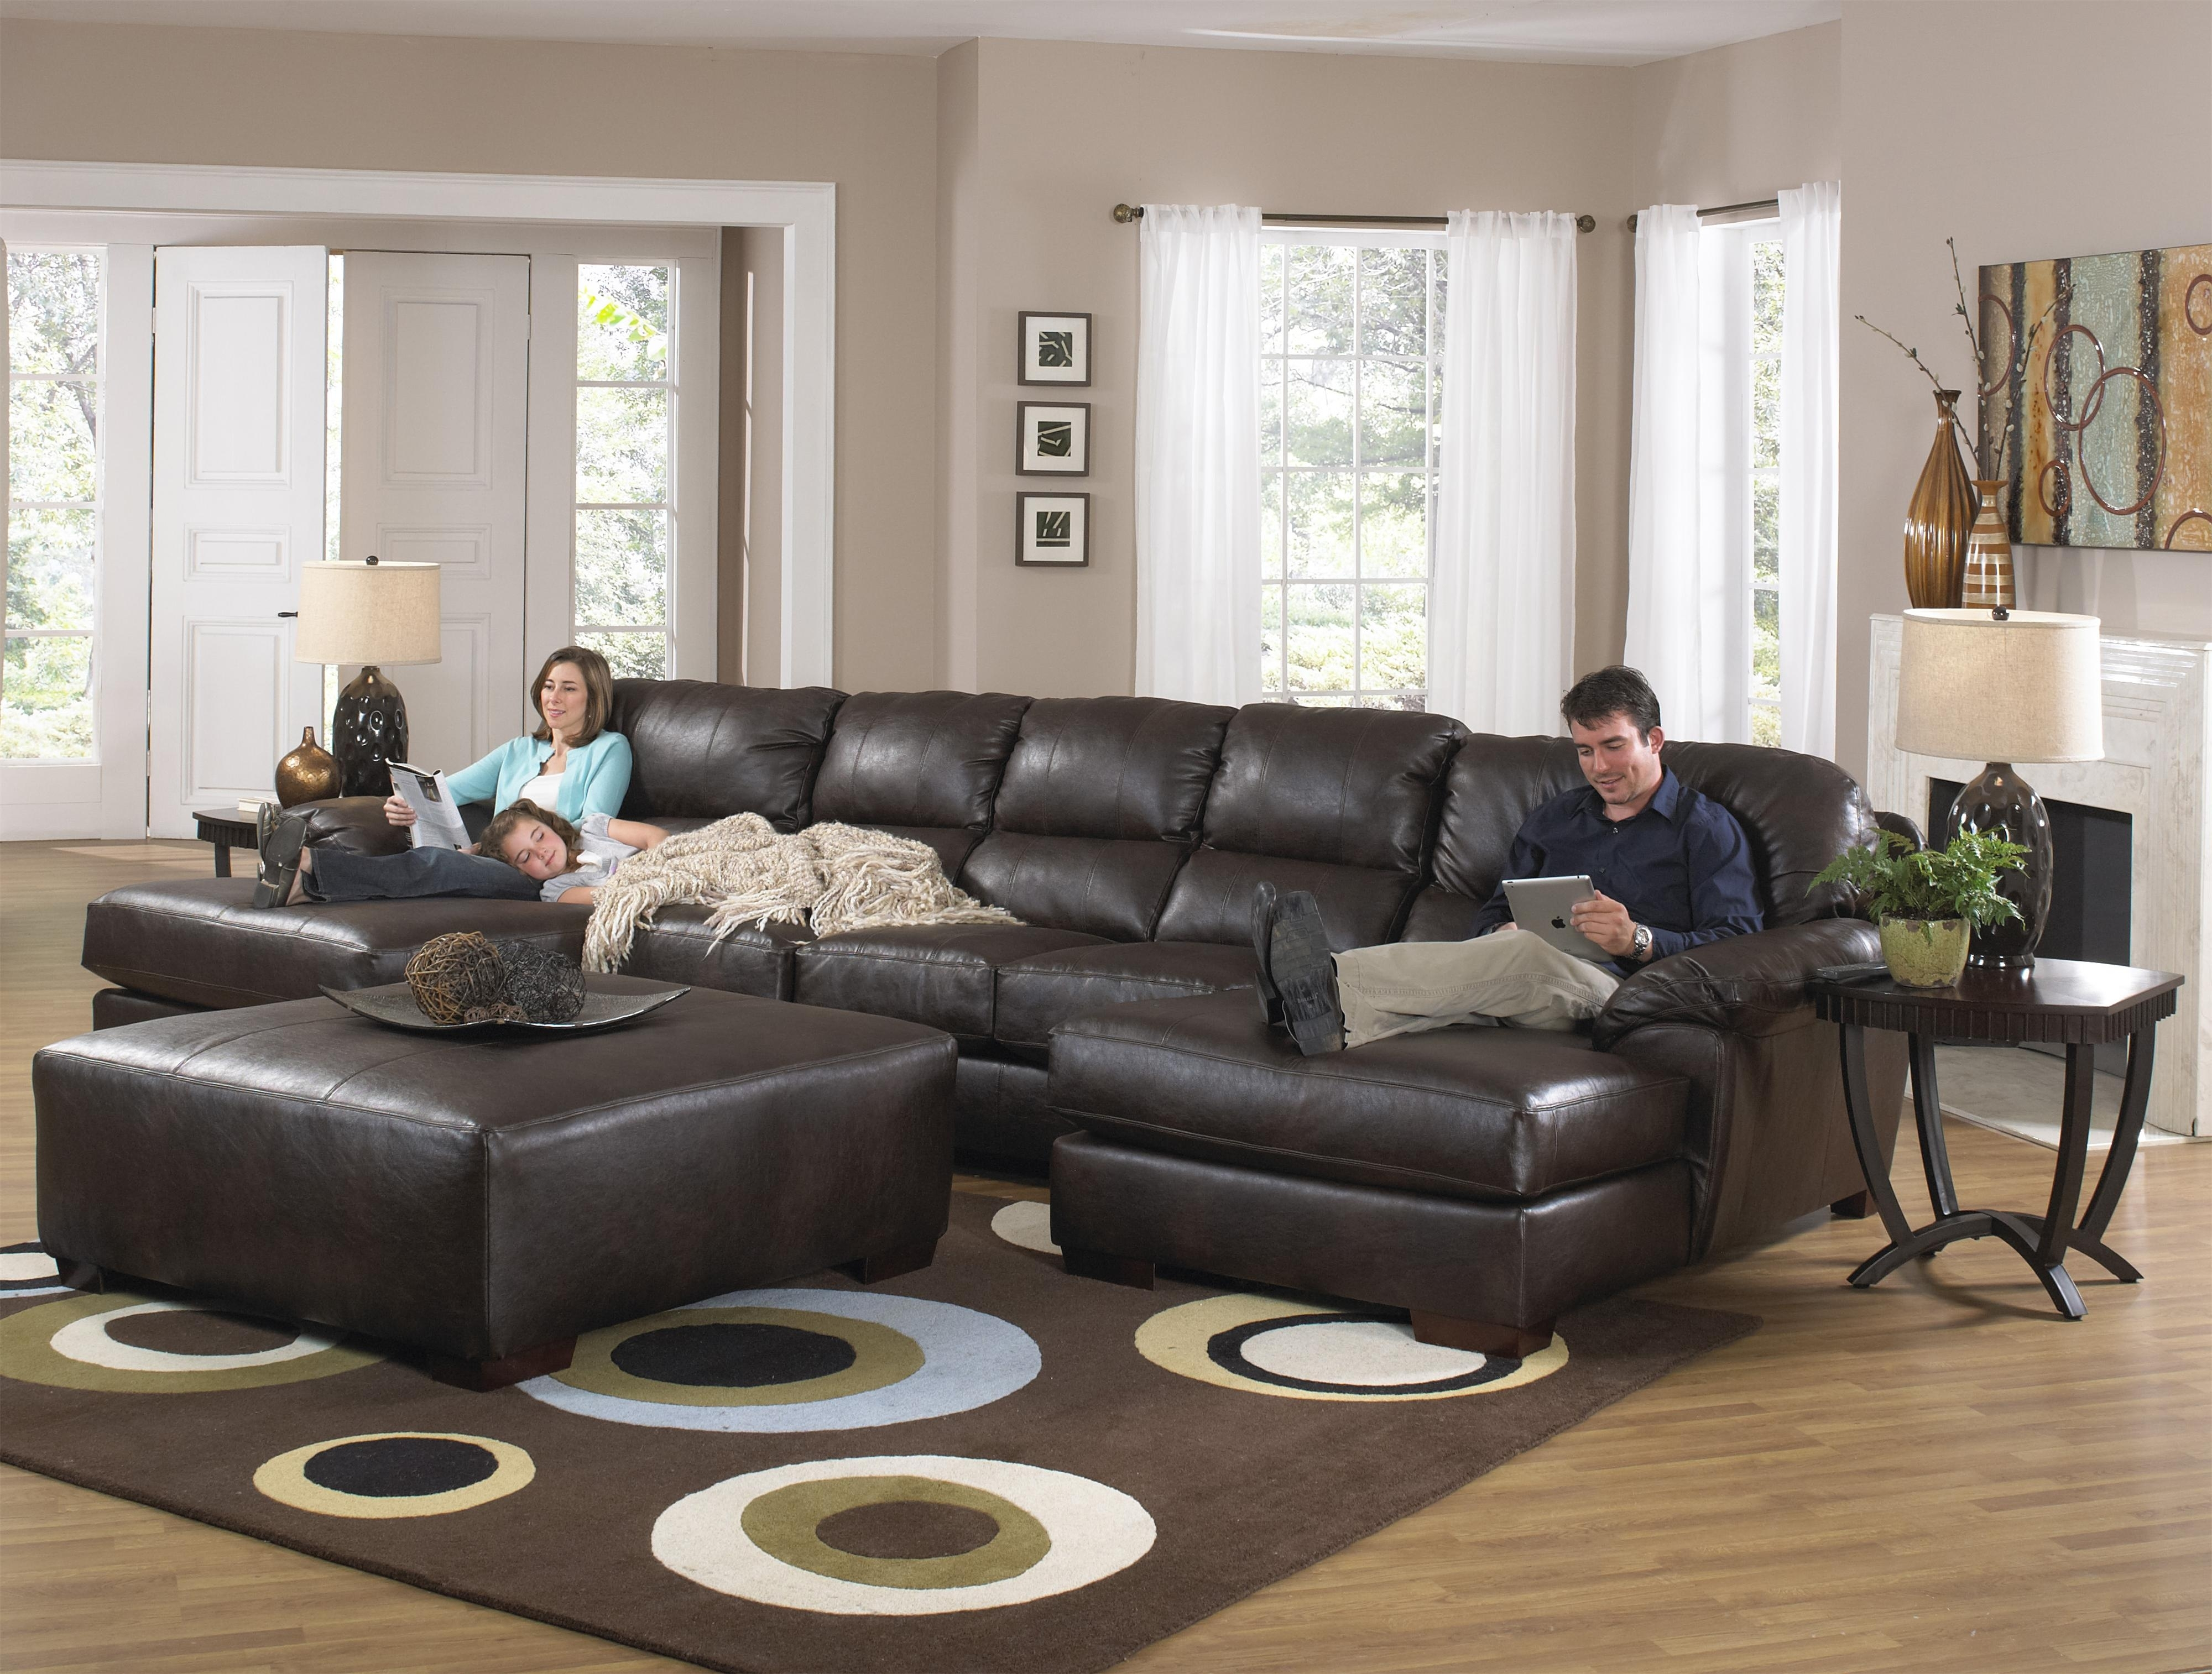 Furniture : Two Chaise Sectional Sofa With Five Total Seats With Regard To Sofas With Chaise And Ottoman (View 10 of 10)